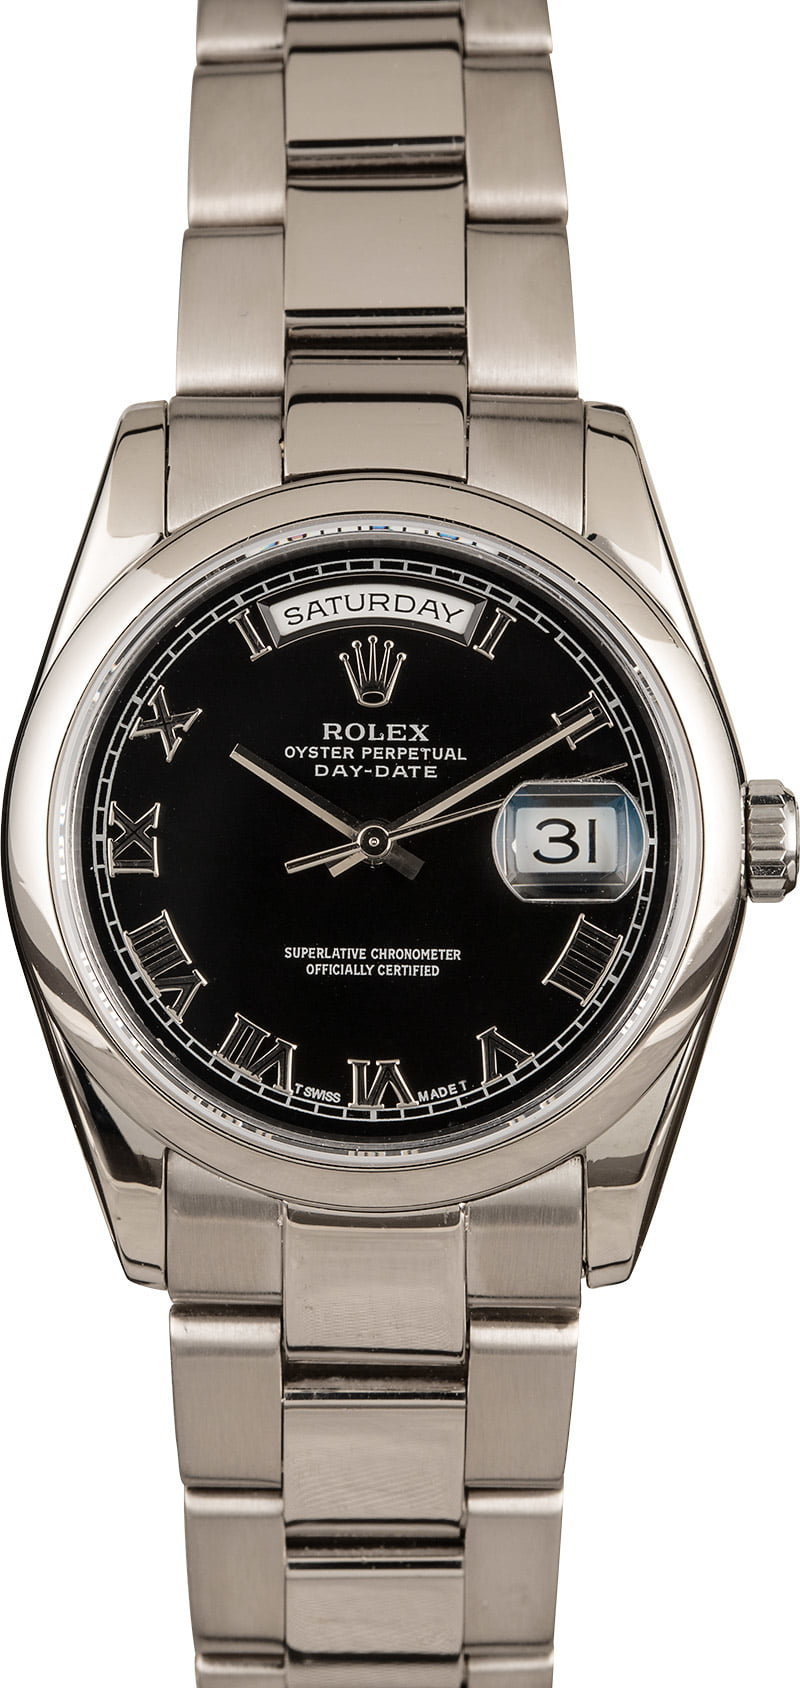 Buy Used Rolex Day-Date 118209 | Bob's Watches - Sku: 128113